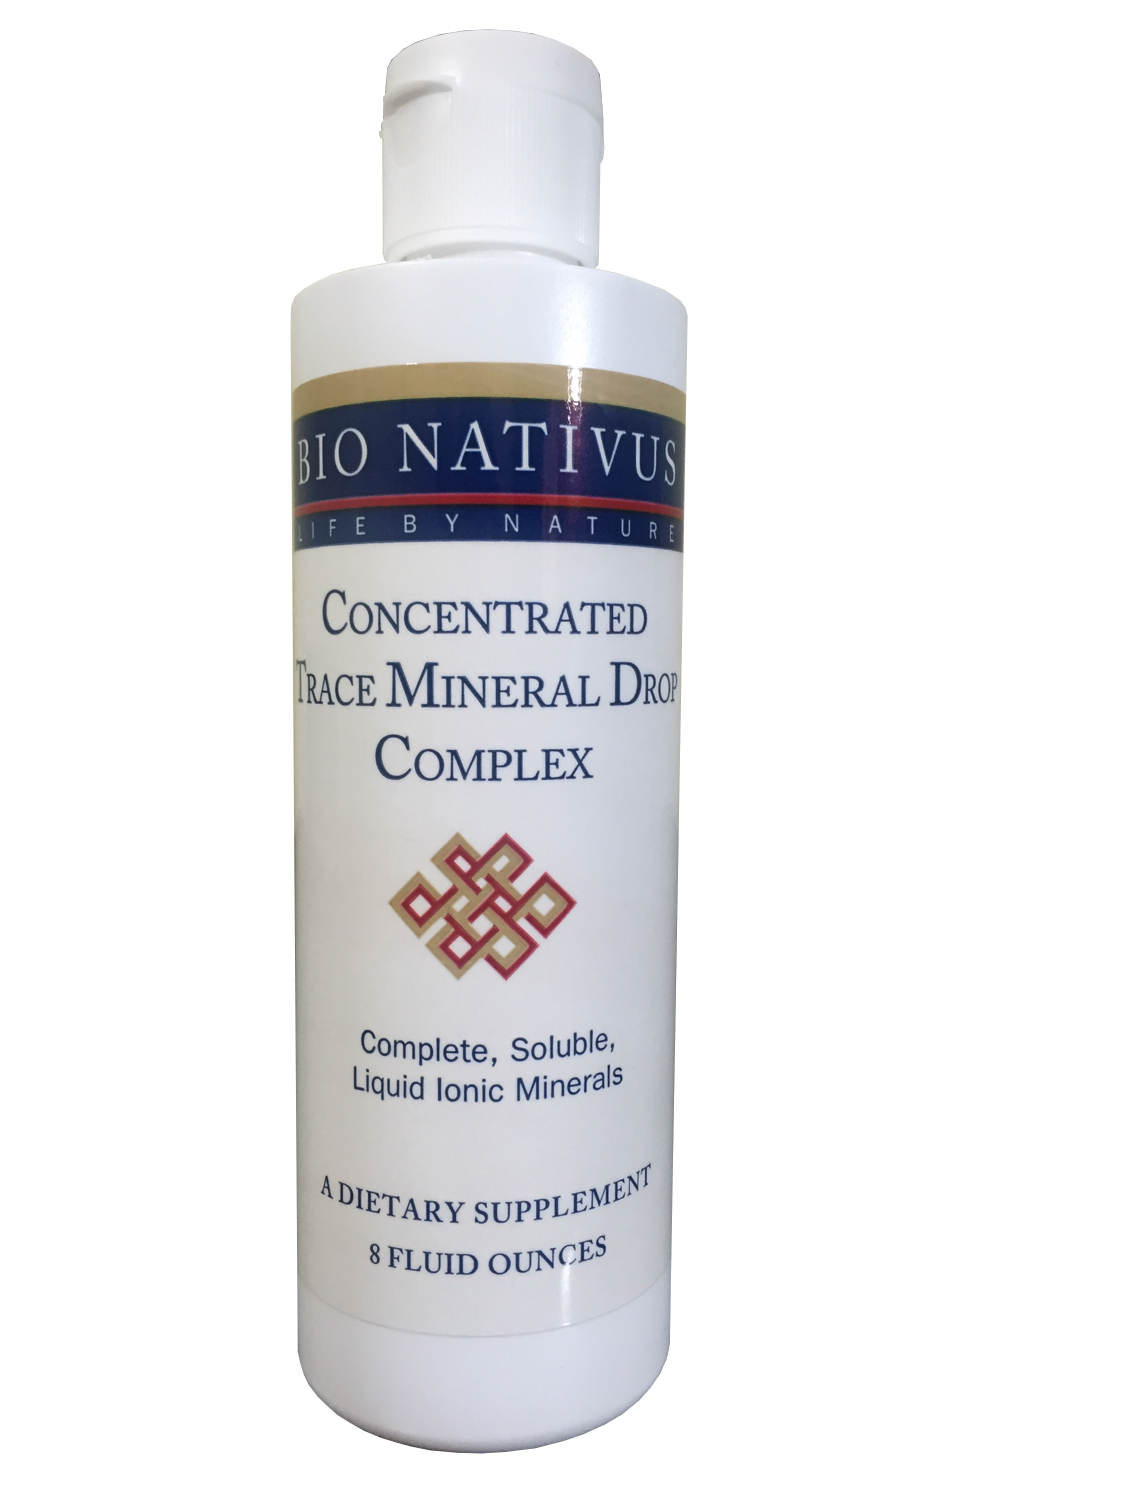 Concentrated Trace Mineral Drop Complex 0001